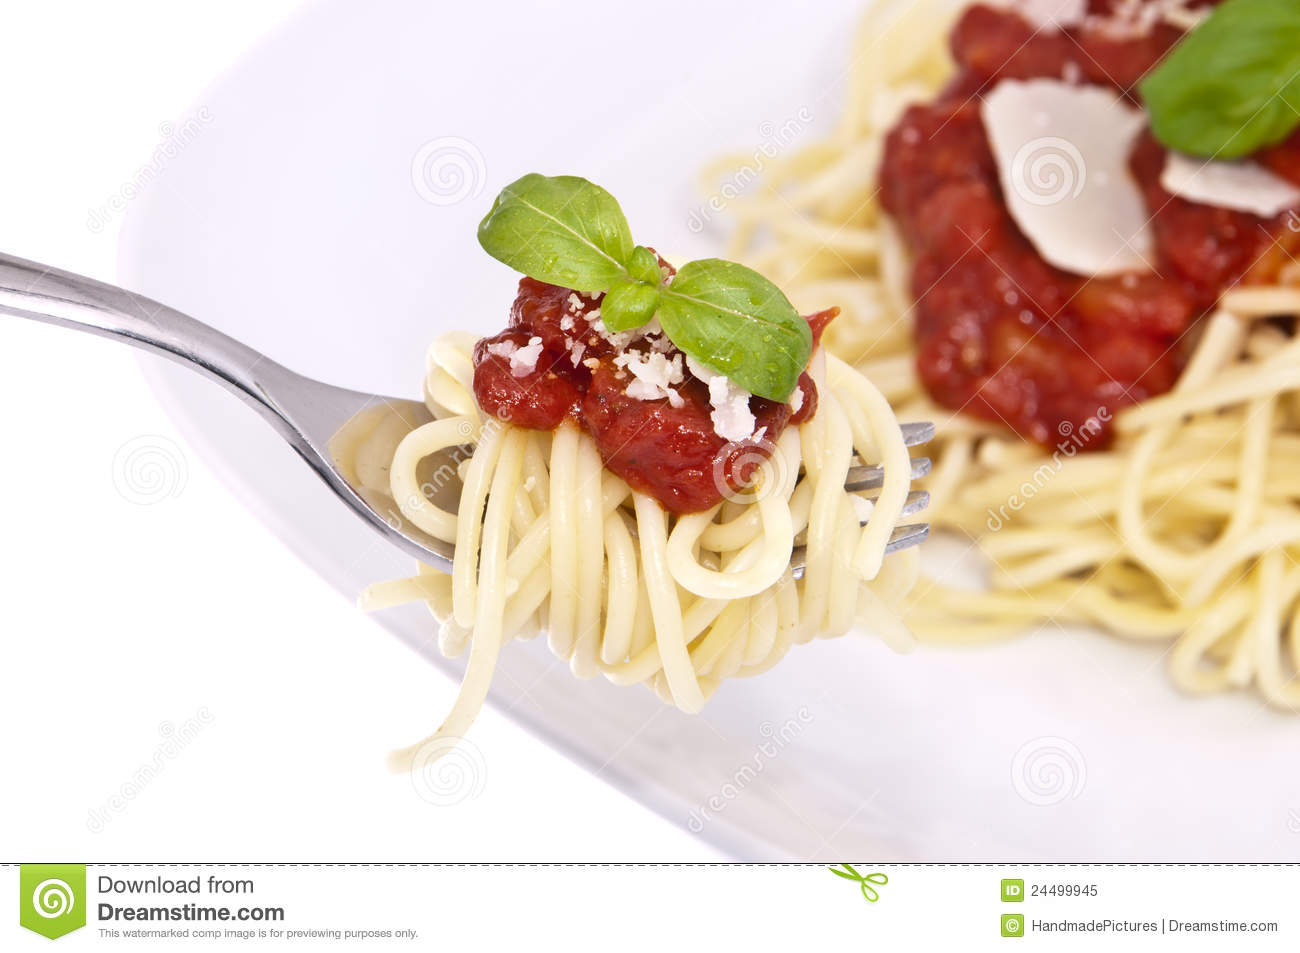 Spaghetti with tomato sauce, basil and parmesan cheese on a fork.